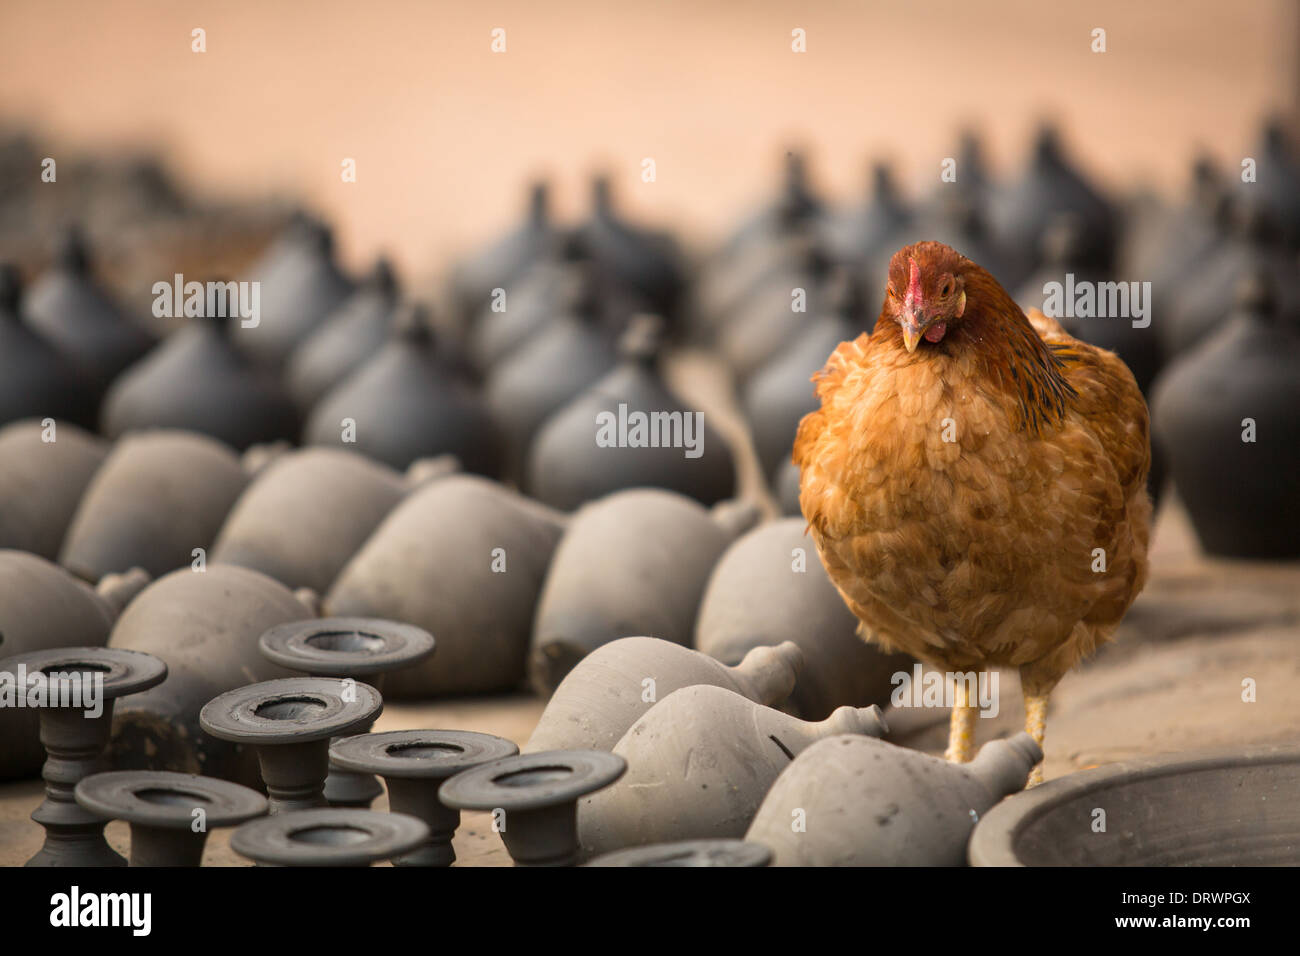 Chicken among the clay products in the village's pottery workshop. - Stock Image